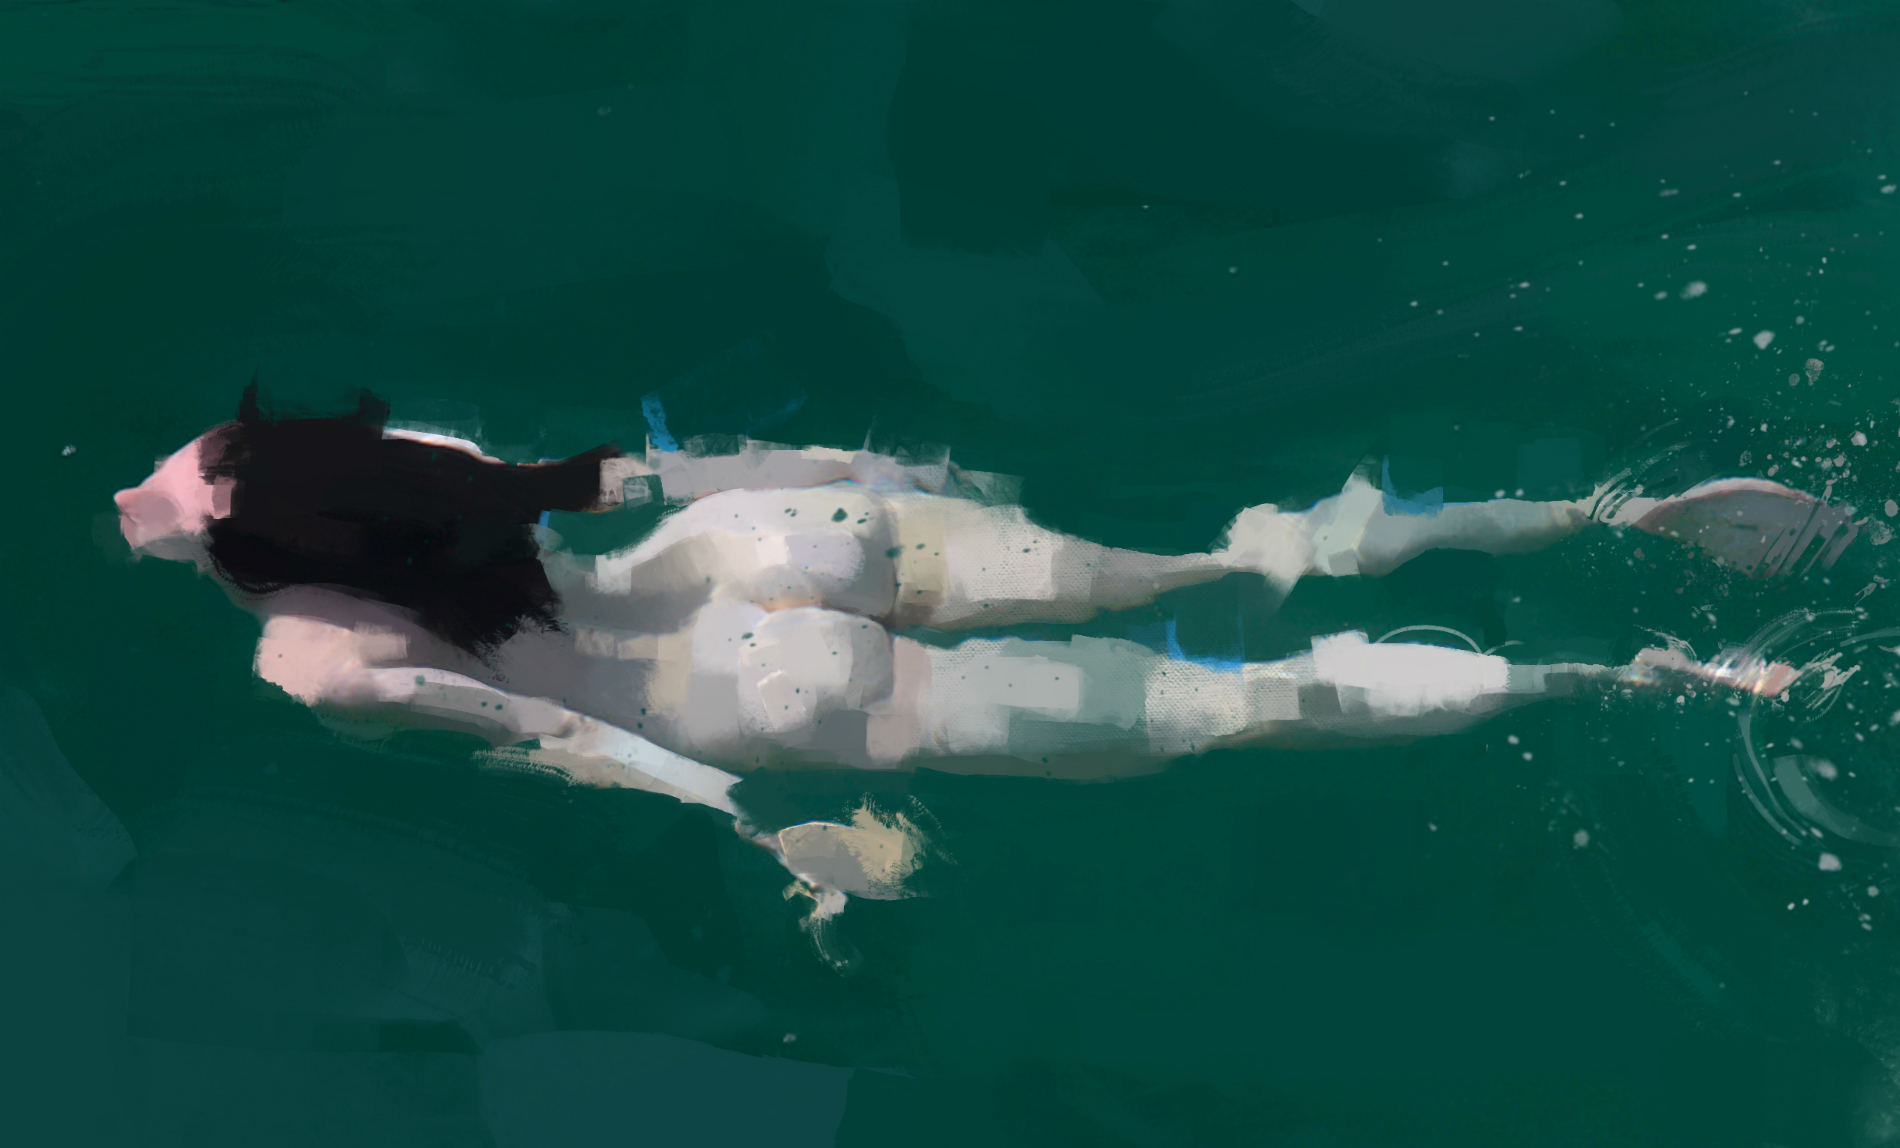 pedro covo painting green swimmer nude